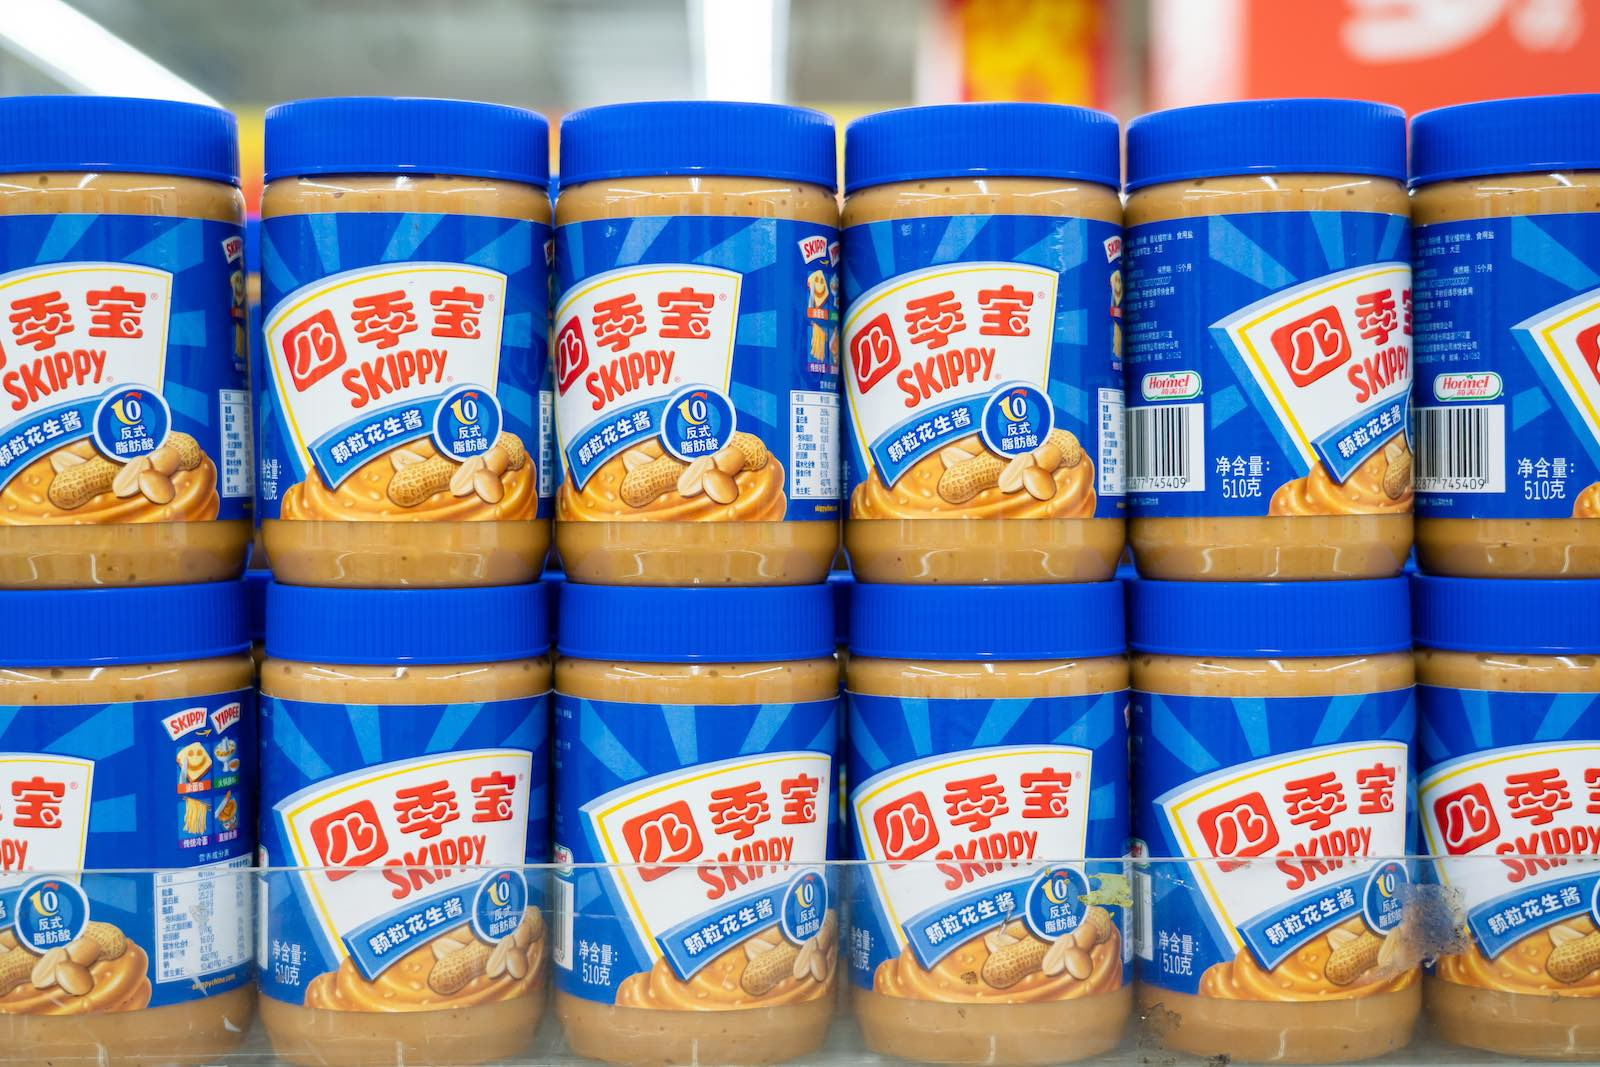 Skippy peanut butter, a best seller in China, which despite the kangaroo-sounding name, is manufactured in the US (Photo: Alex Tai via Getty)